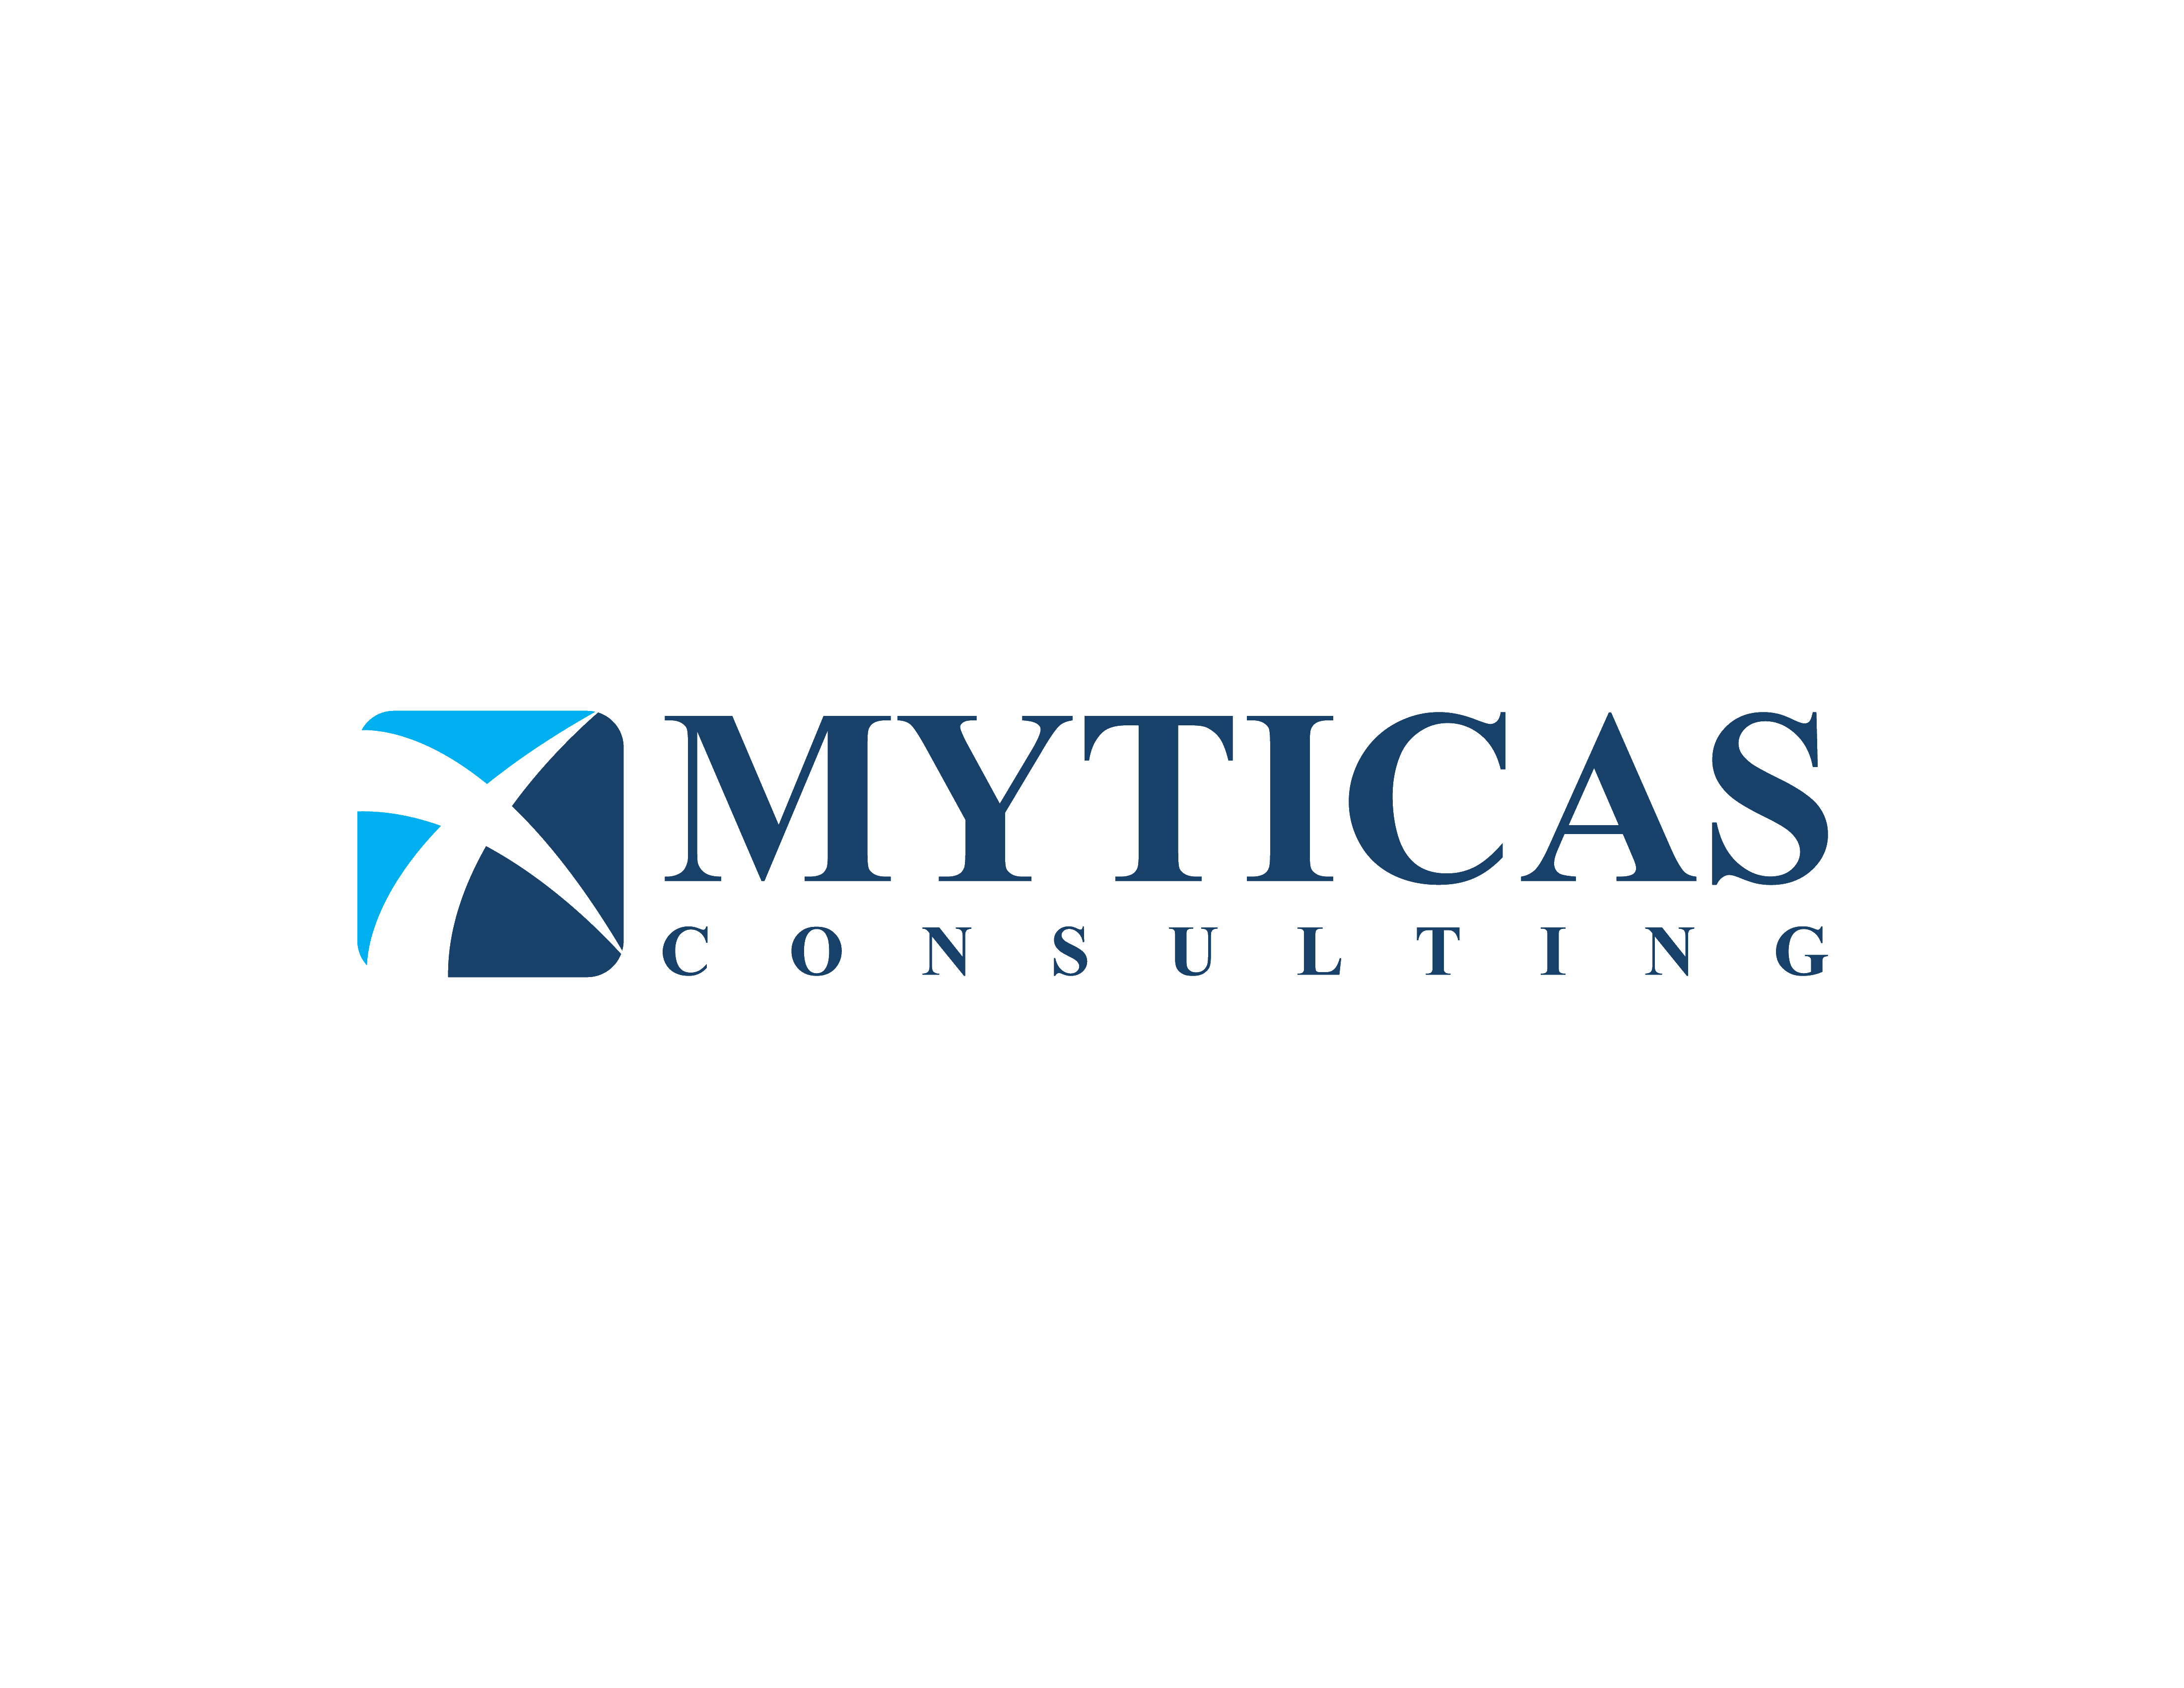 Myticas Consulting